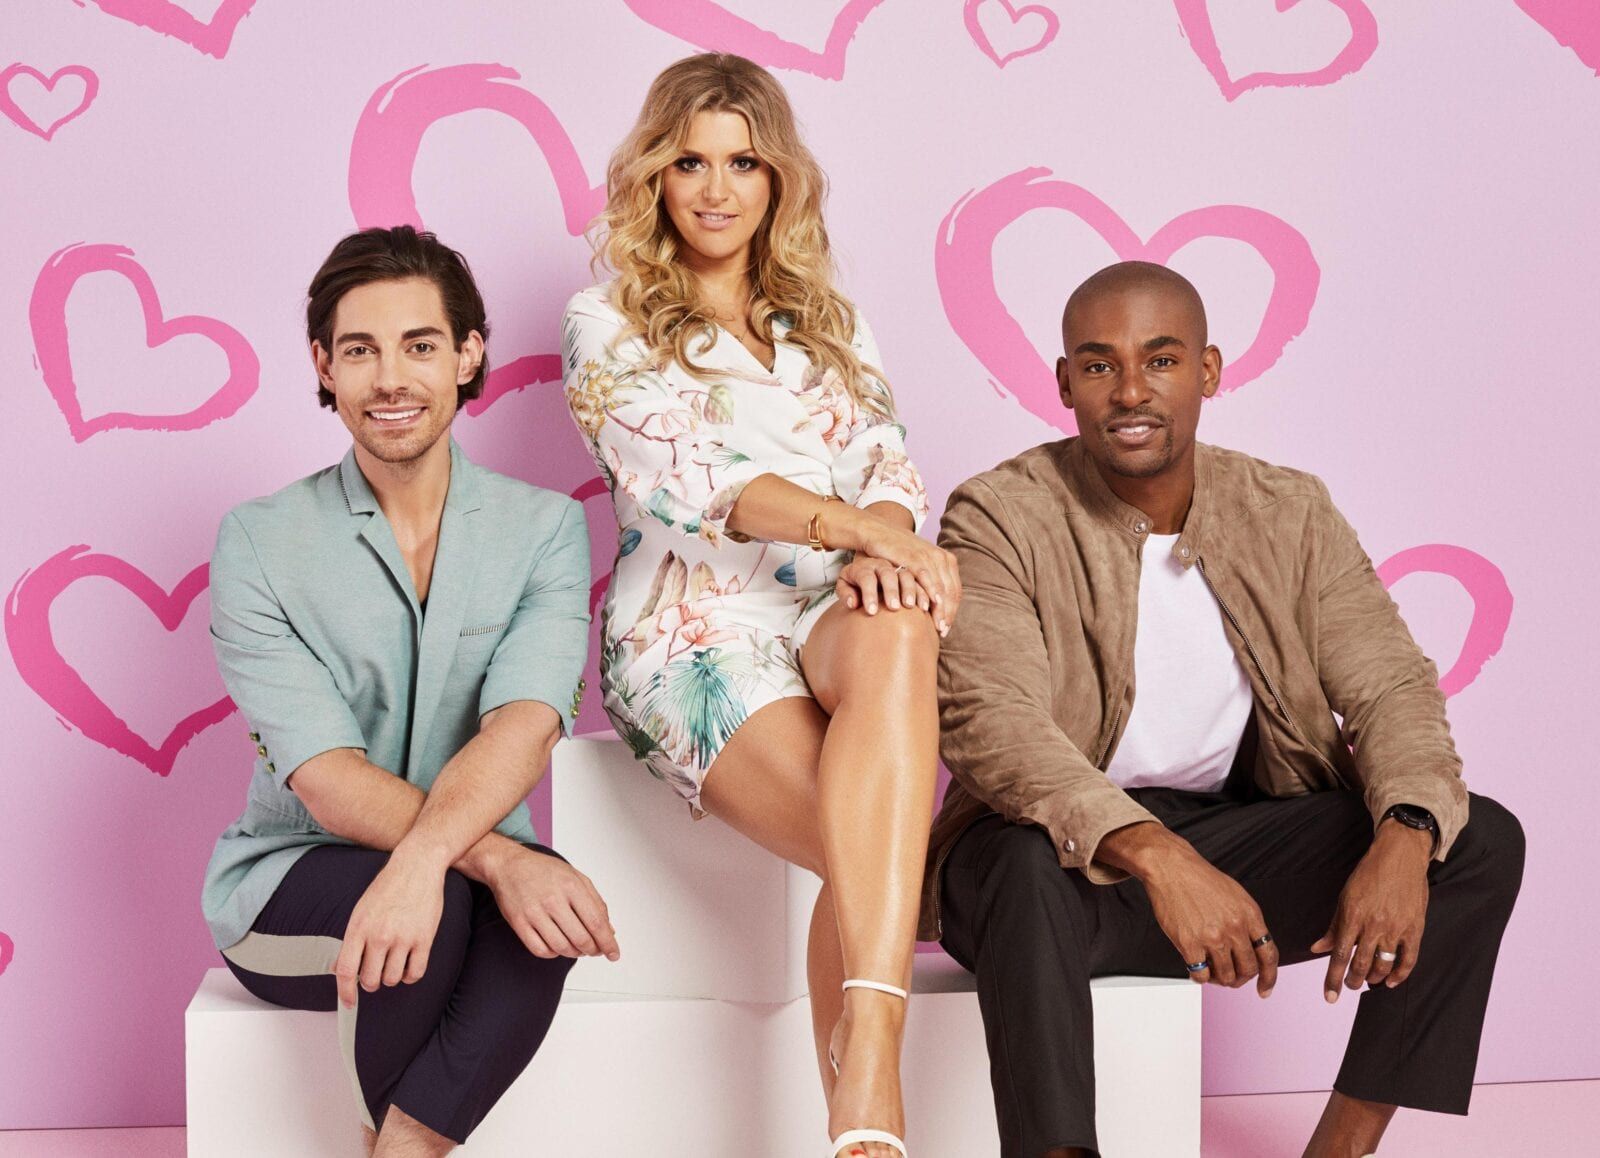 Celebs Go Dating is back and looking for Mancs to appear in next series, The Manc